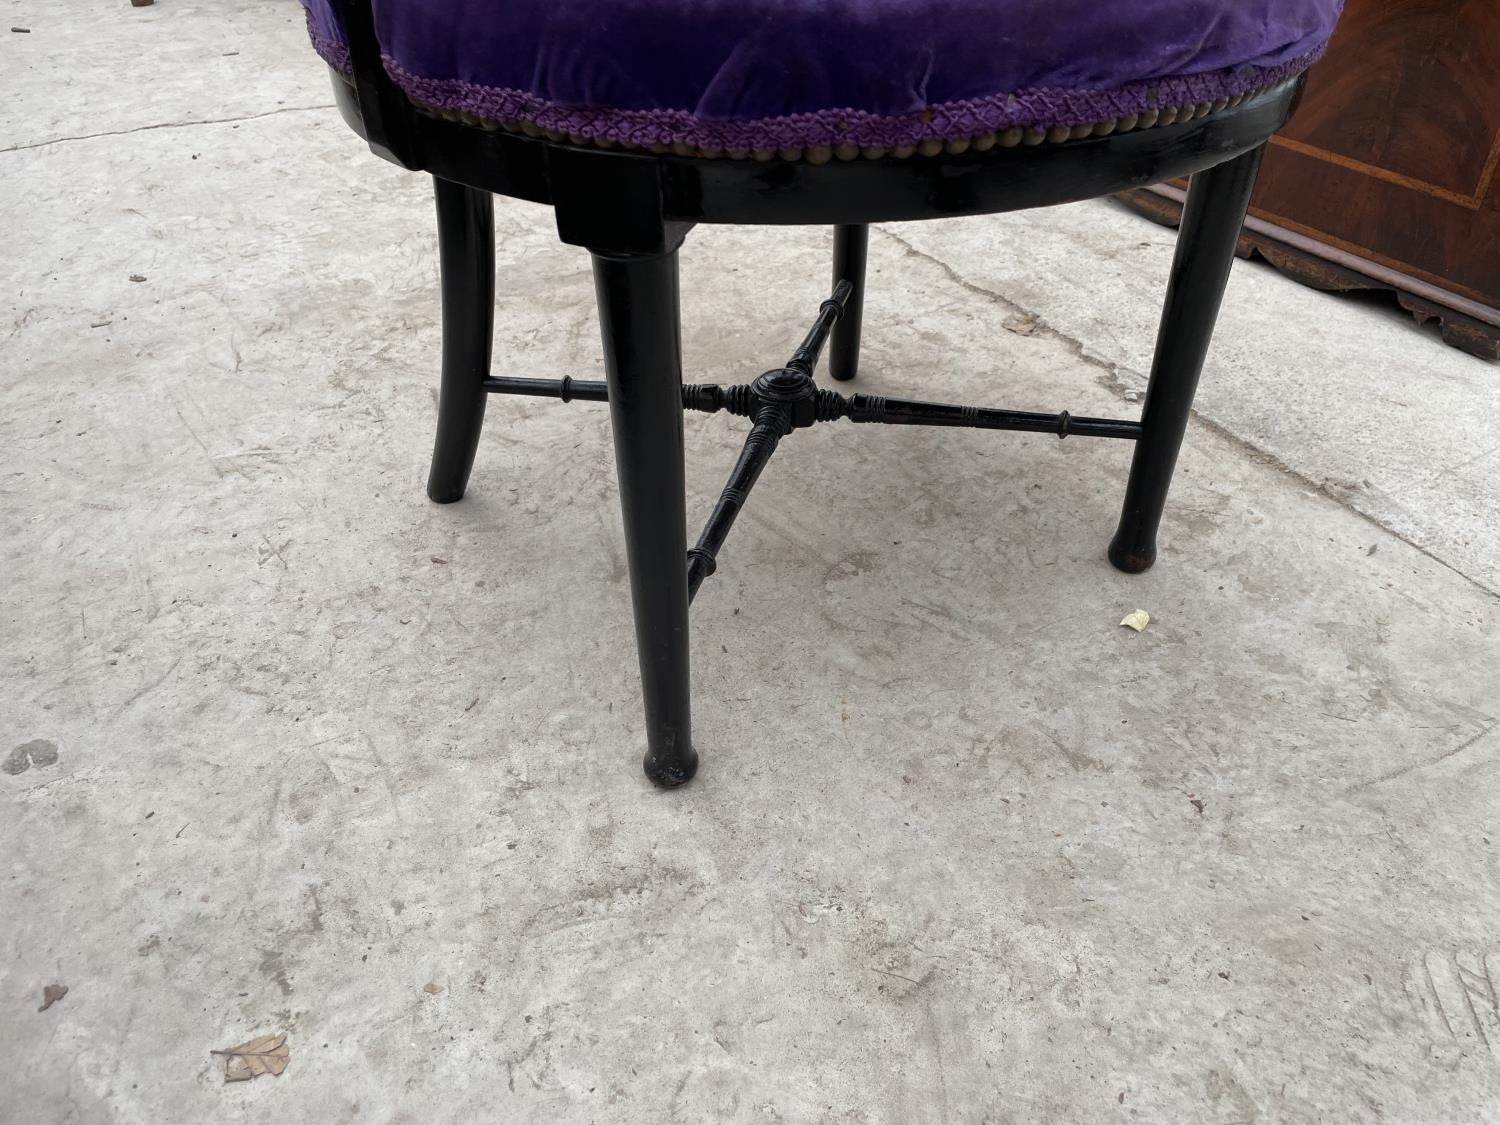 AN ARTS & CRAFTS BLACK PAINTED ELBOW CHAIR A/F - Image 4 of 4